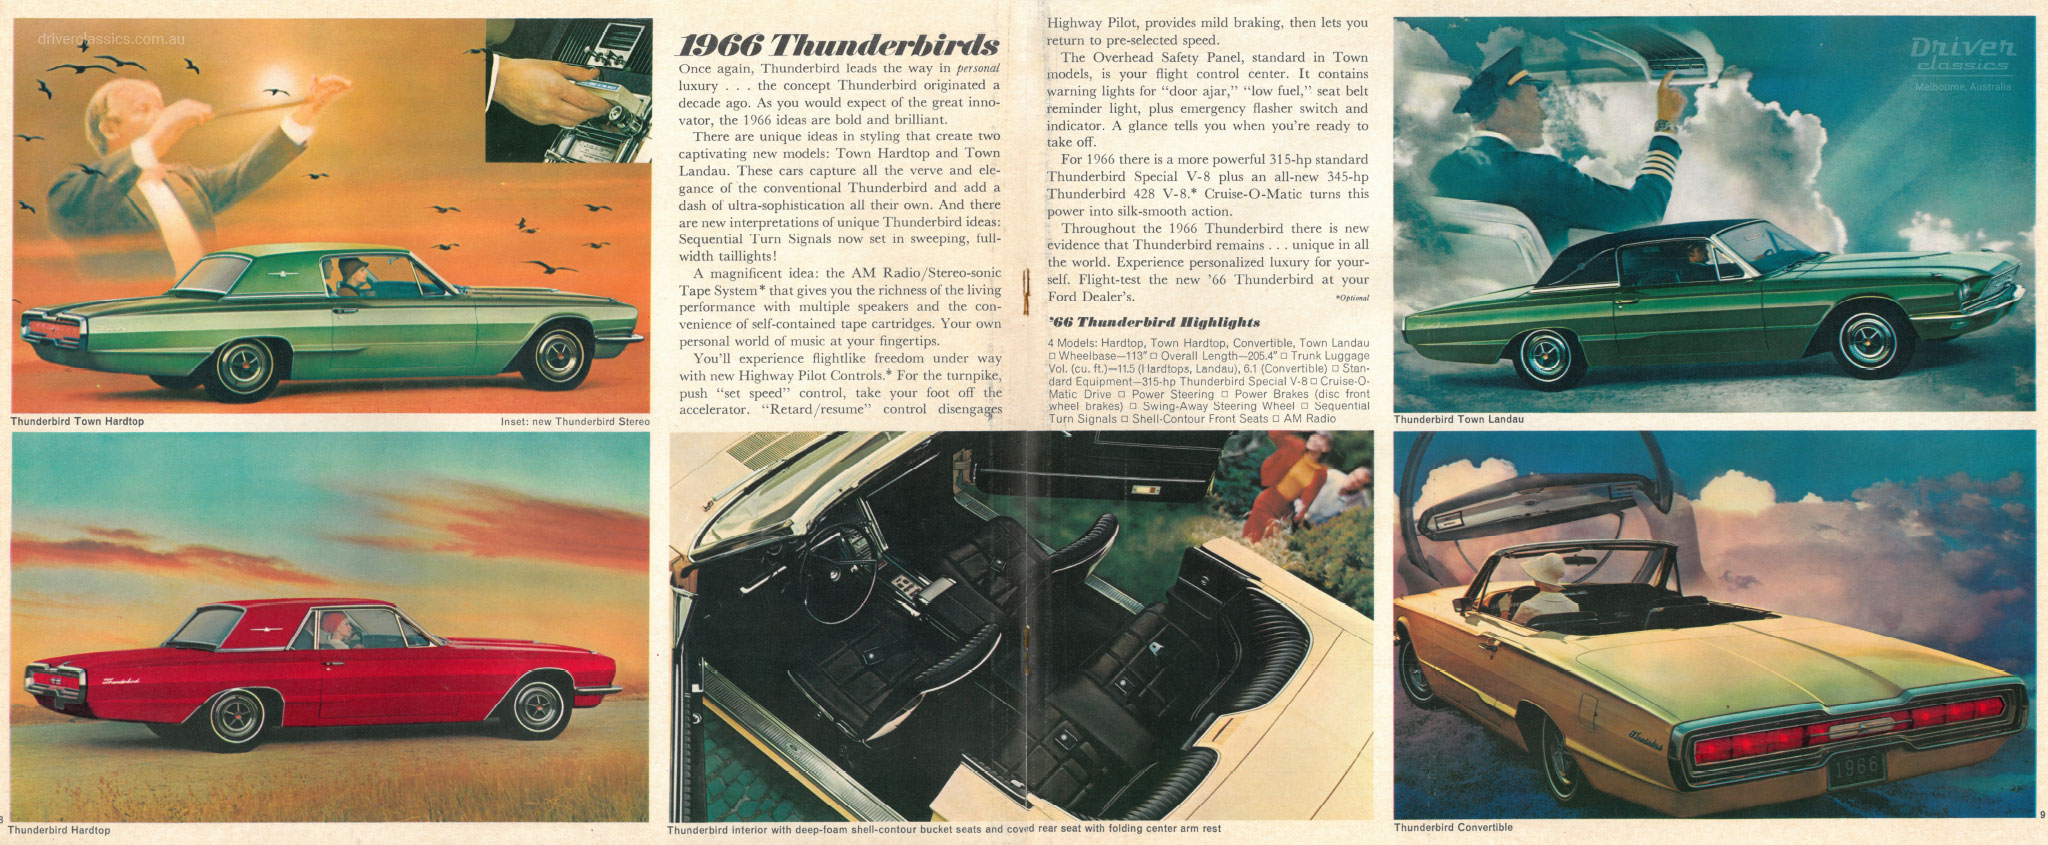 Page from of 1966 Ford Thunderbird brochure